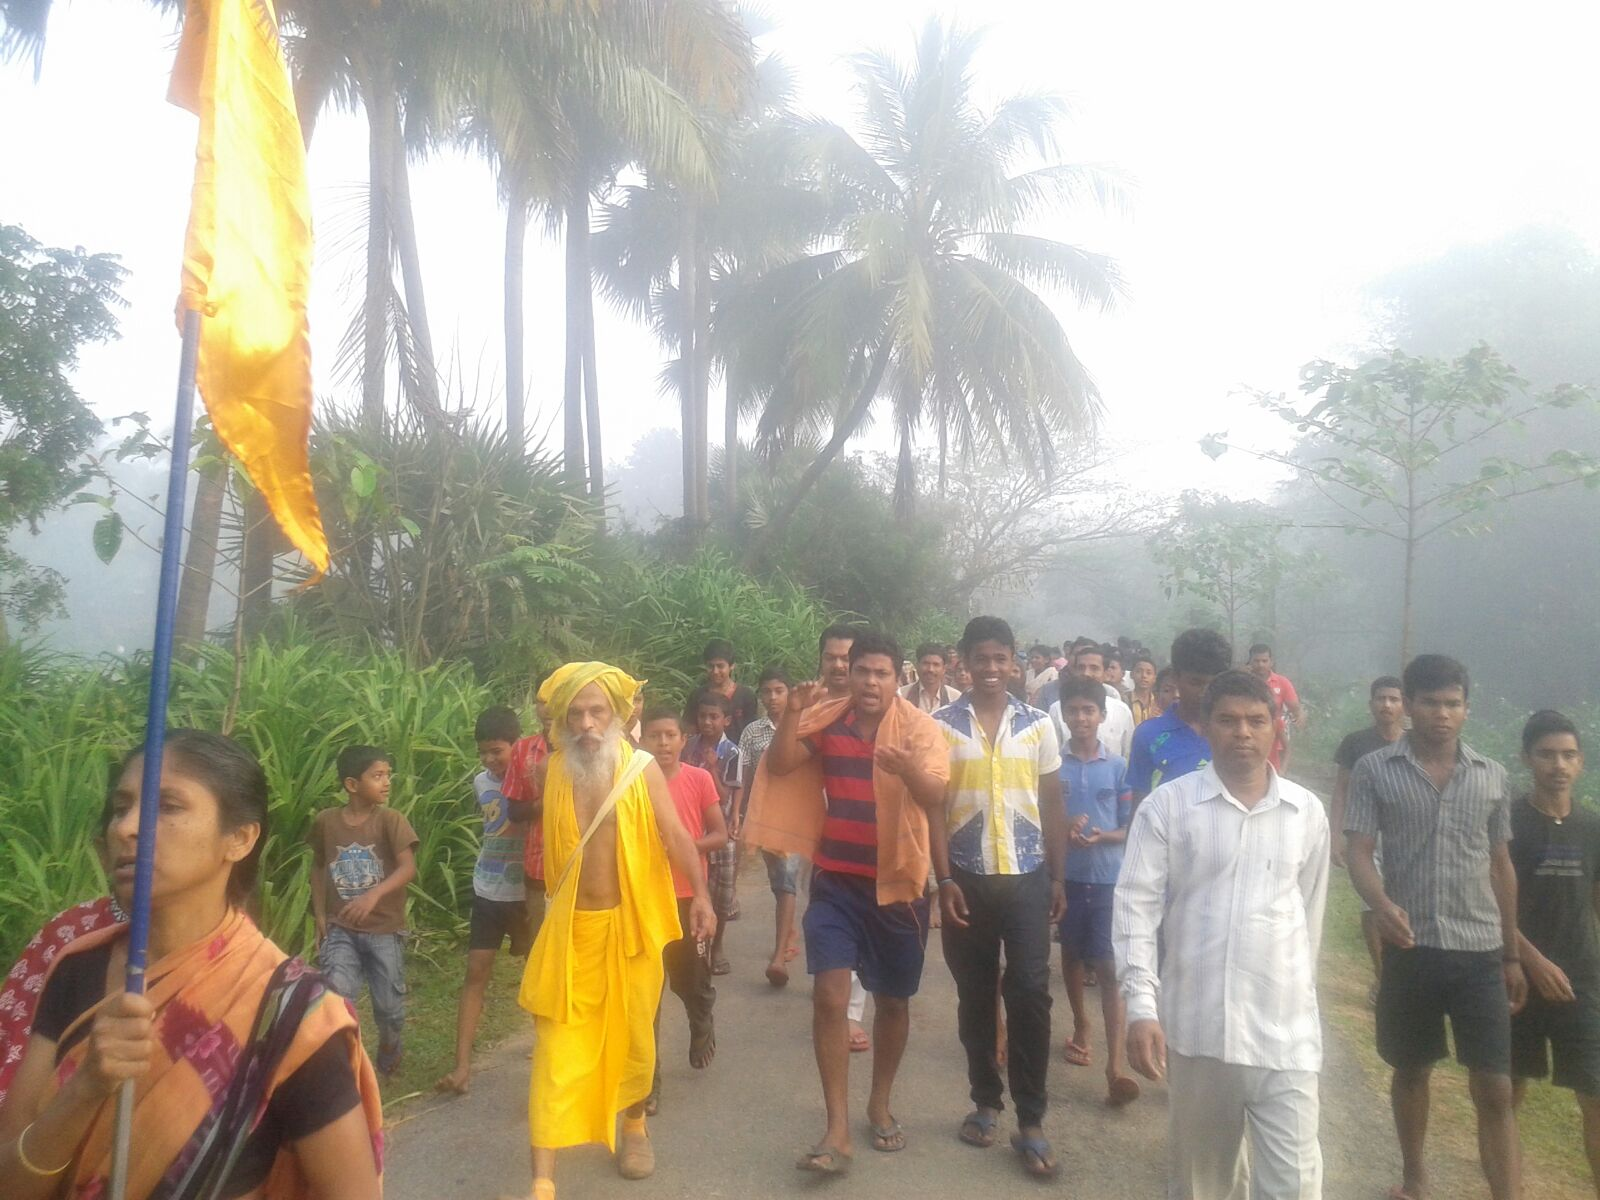 Bharat Parikrama Yatra enters Chhattisgarh on Day-1387; Yatra to conclude at Kanyakumari on July 9, 2017